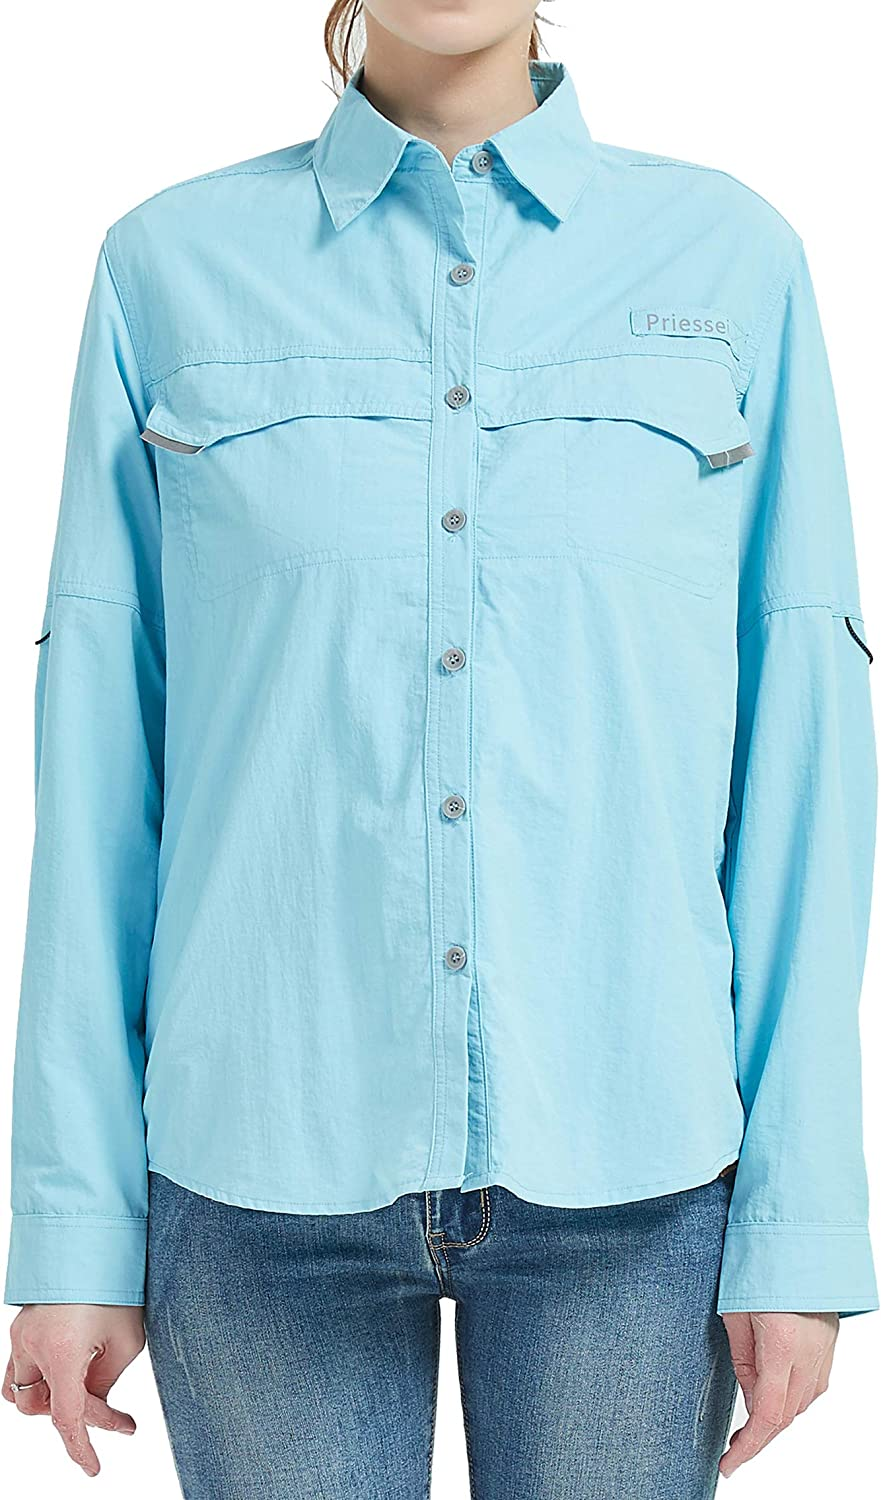 Priessei Women's UPF 50+ Hiking Shirts Long Sleeve Outdoor Shirts for Camping Fishing Breathable and Fast Dry